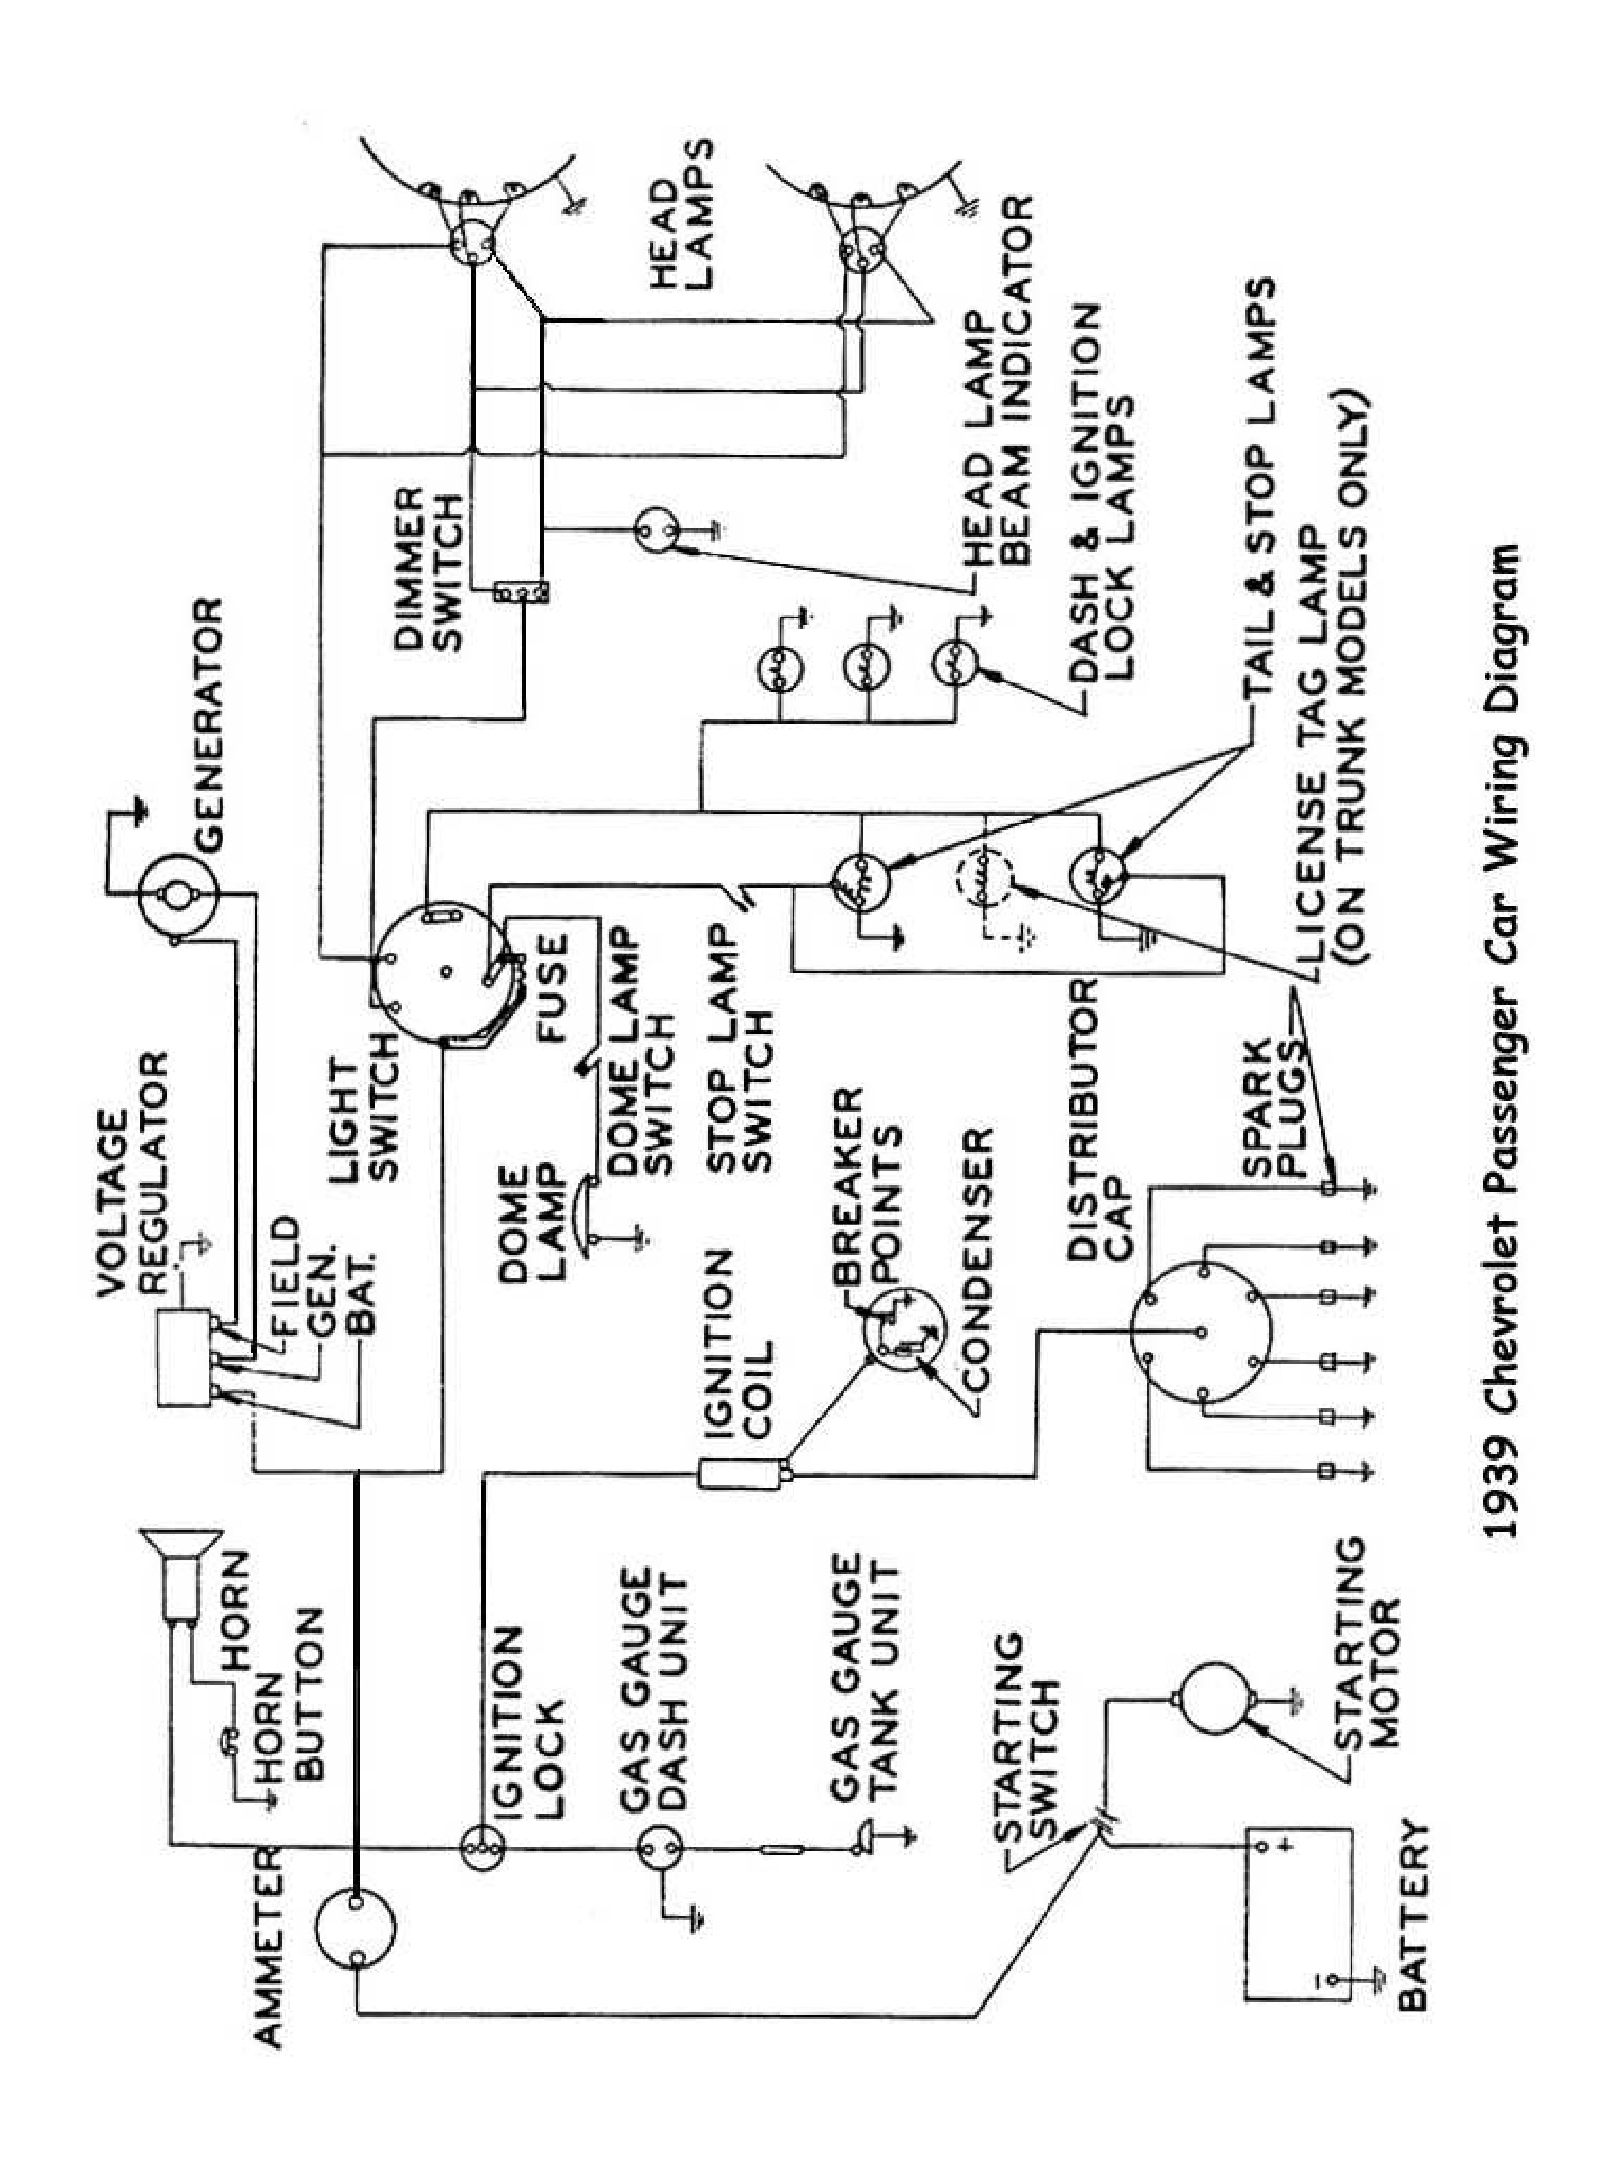 hight resolution of chevy wiring diagrams lighting and ignition circuit diagram for 1934 chevrolet cars